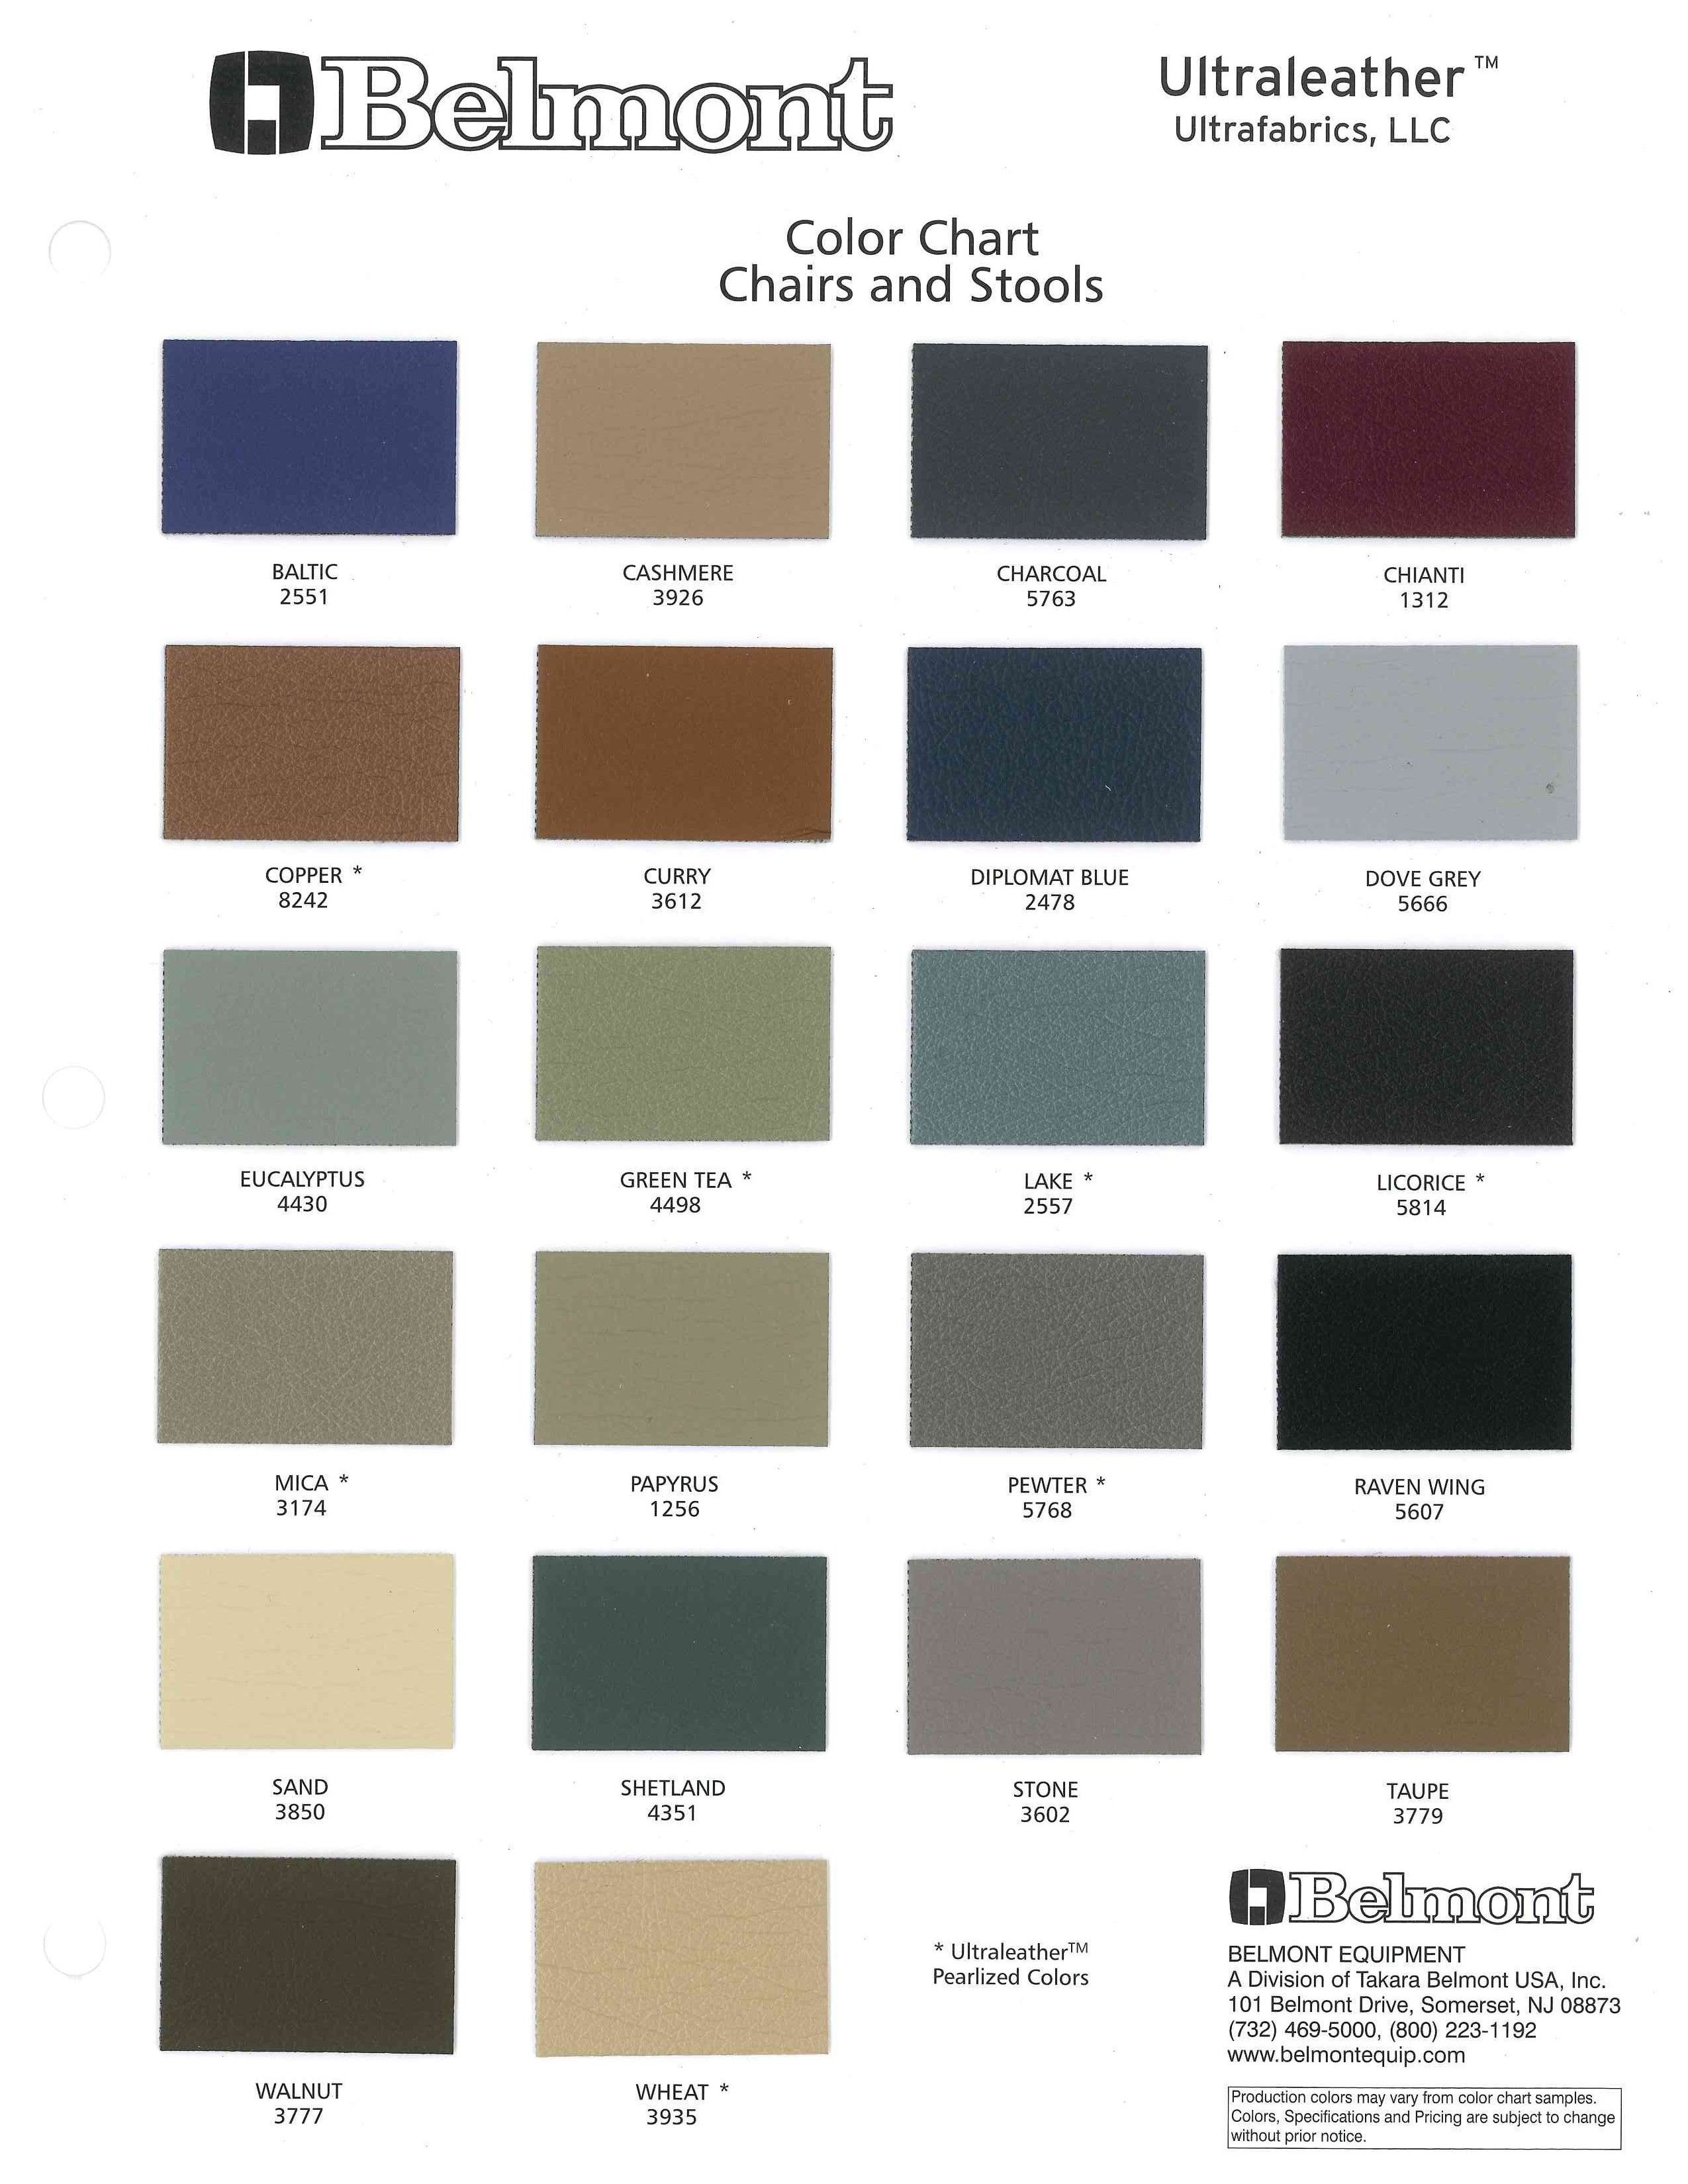 Color Chart Ultraleathertm Chairs And Stools Belmont